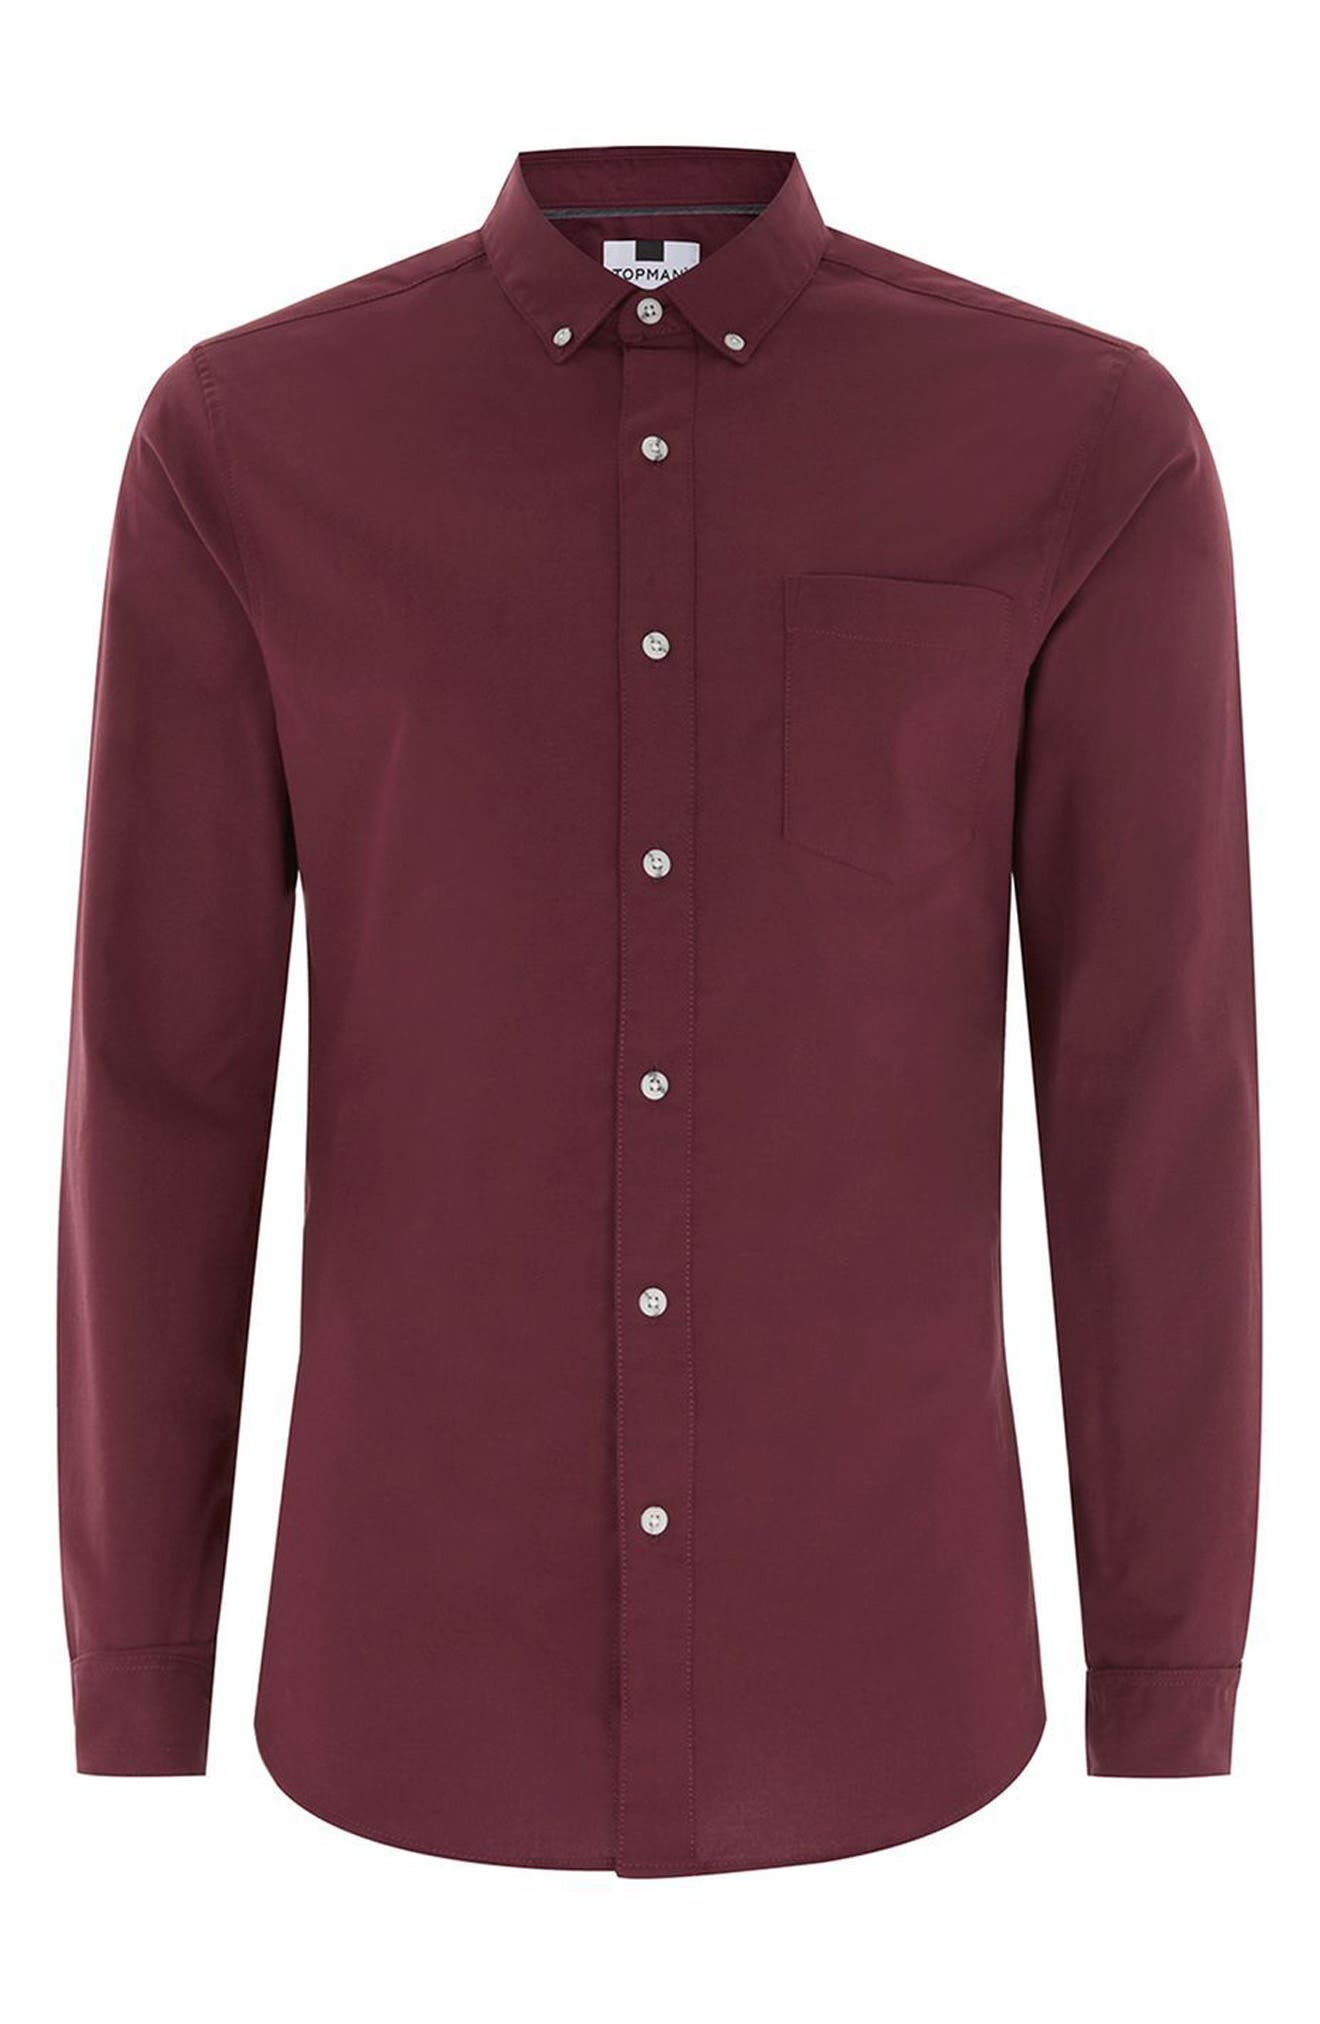 Muscle Fit Oxford Shirt,                             Alternate thumbnail 4, color,                             Burgundy